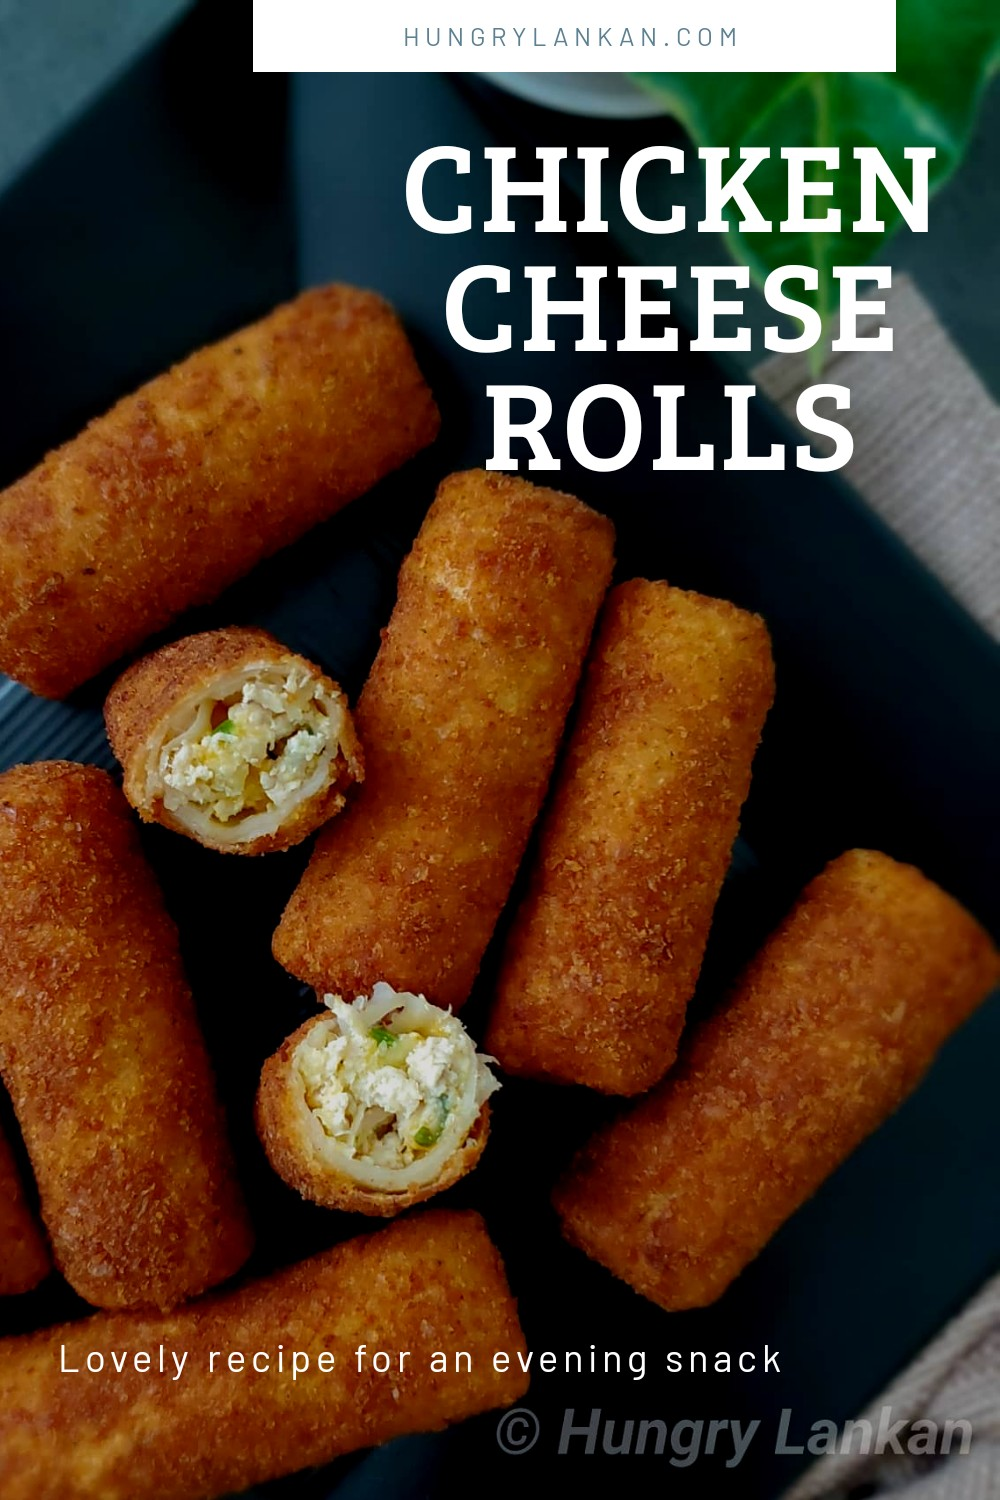 Sri Lankan rolls with a hotter and a better twist. These hot and cheesy crunchy rolls are going to be the KING of your next party!